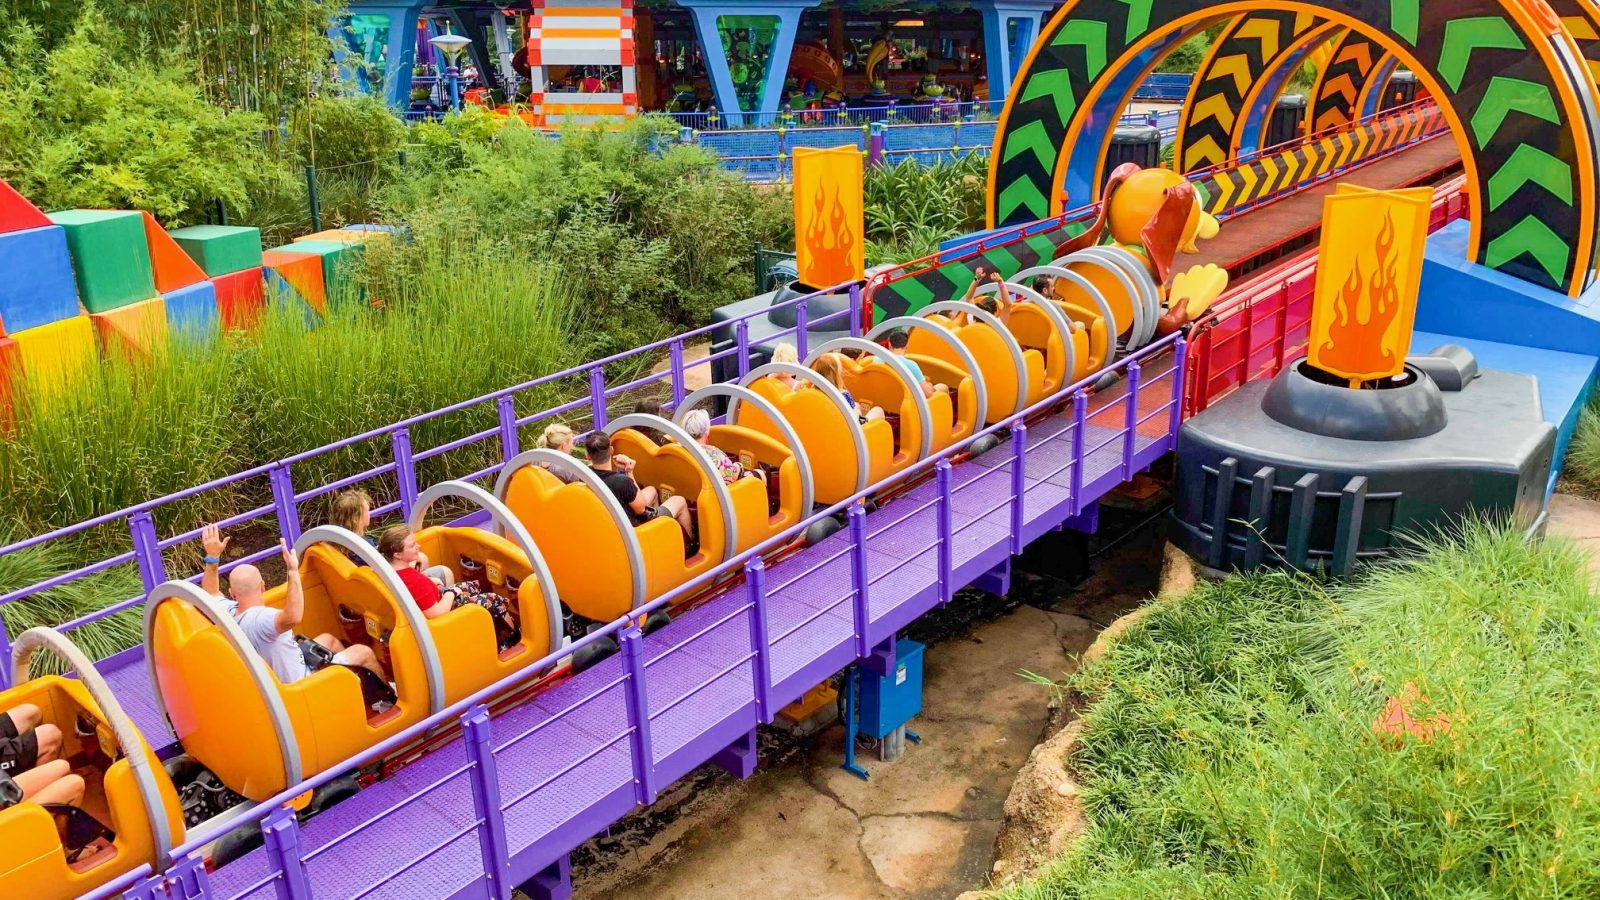 37 Best And Worst Disney World Rides Disney Trippers